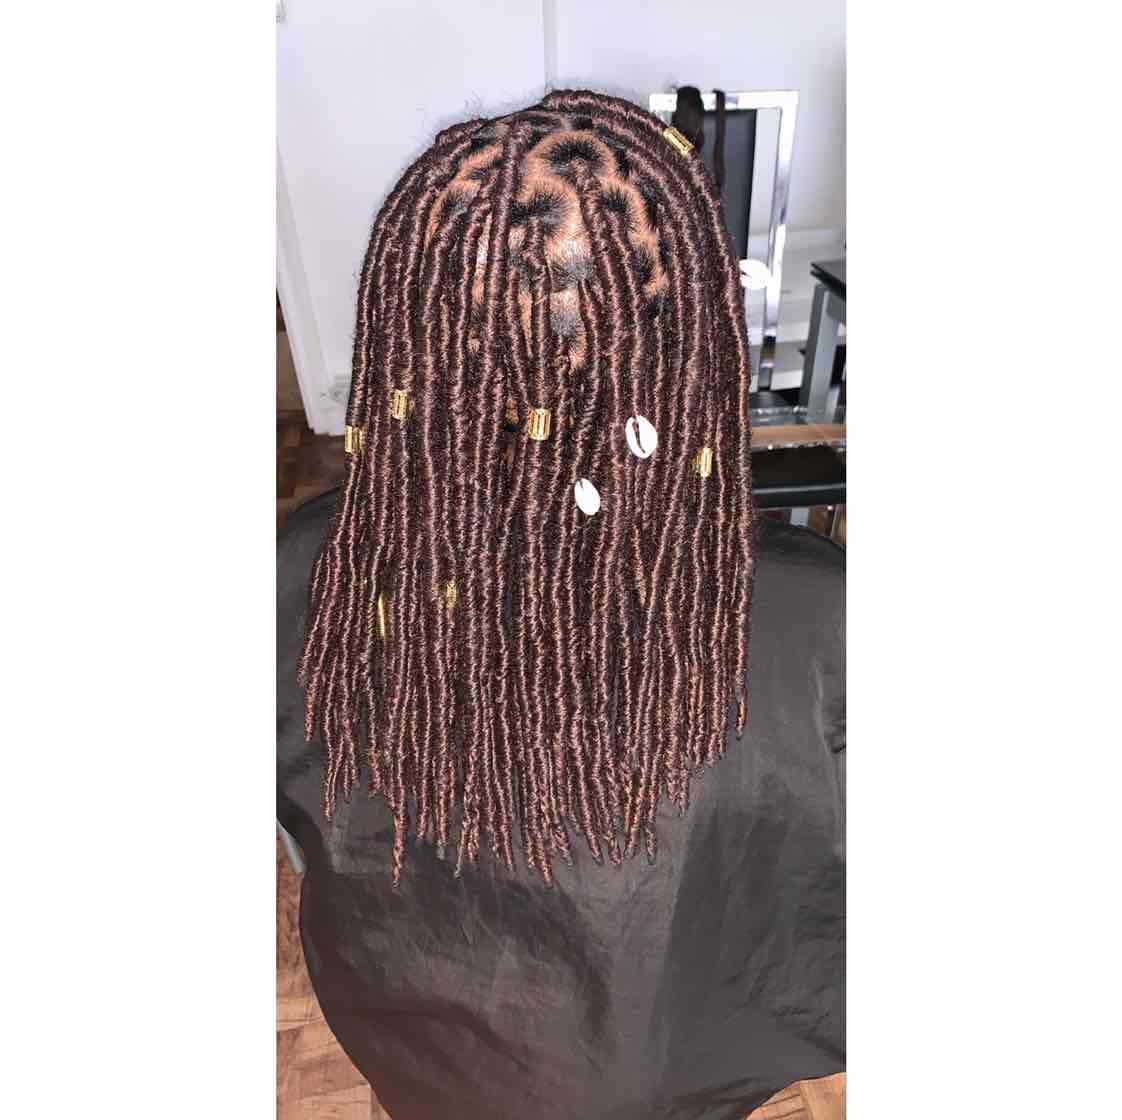 salon de coiffure afro tresse tresses box braids crochet braids vanilles tissages paris 75 77 78 91 92 93 94 95 FCORUWBB